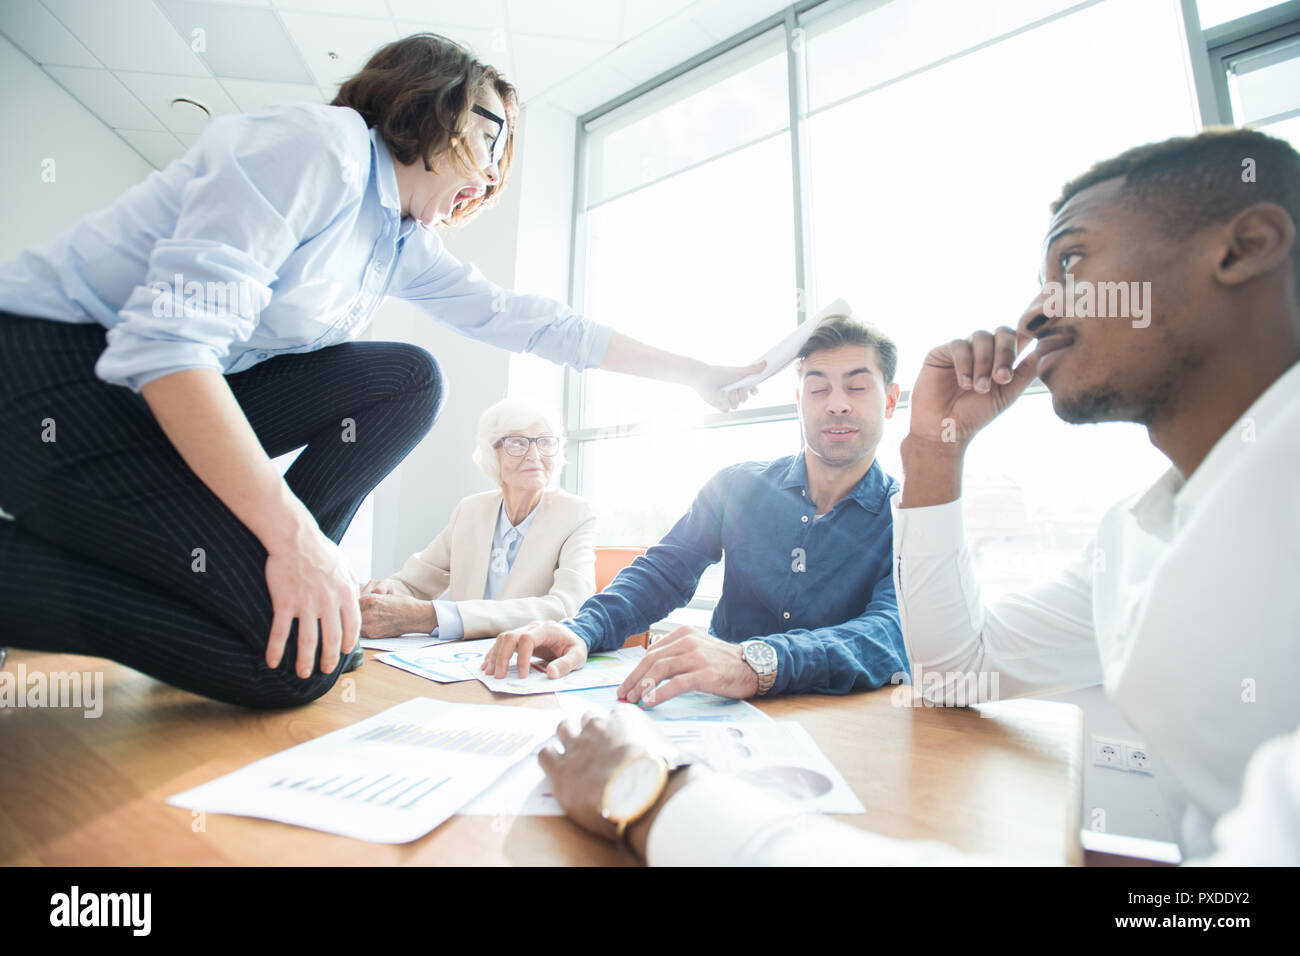 Furious employee hitting boss with rolled paper - Stock Image